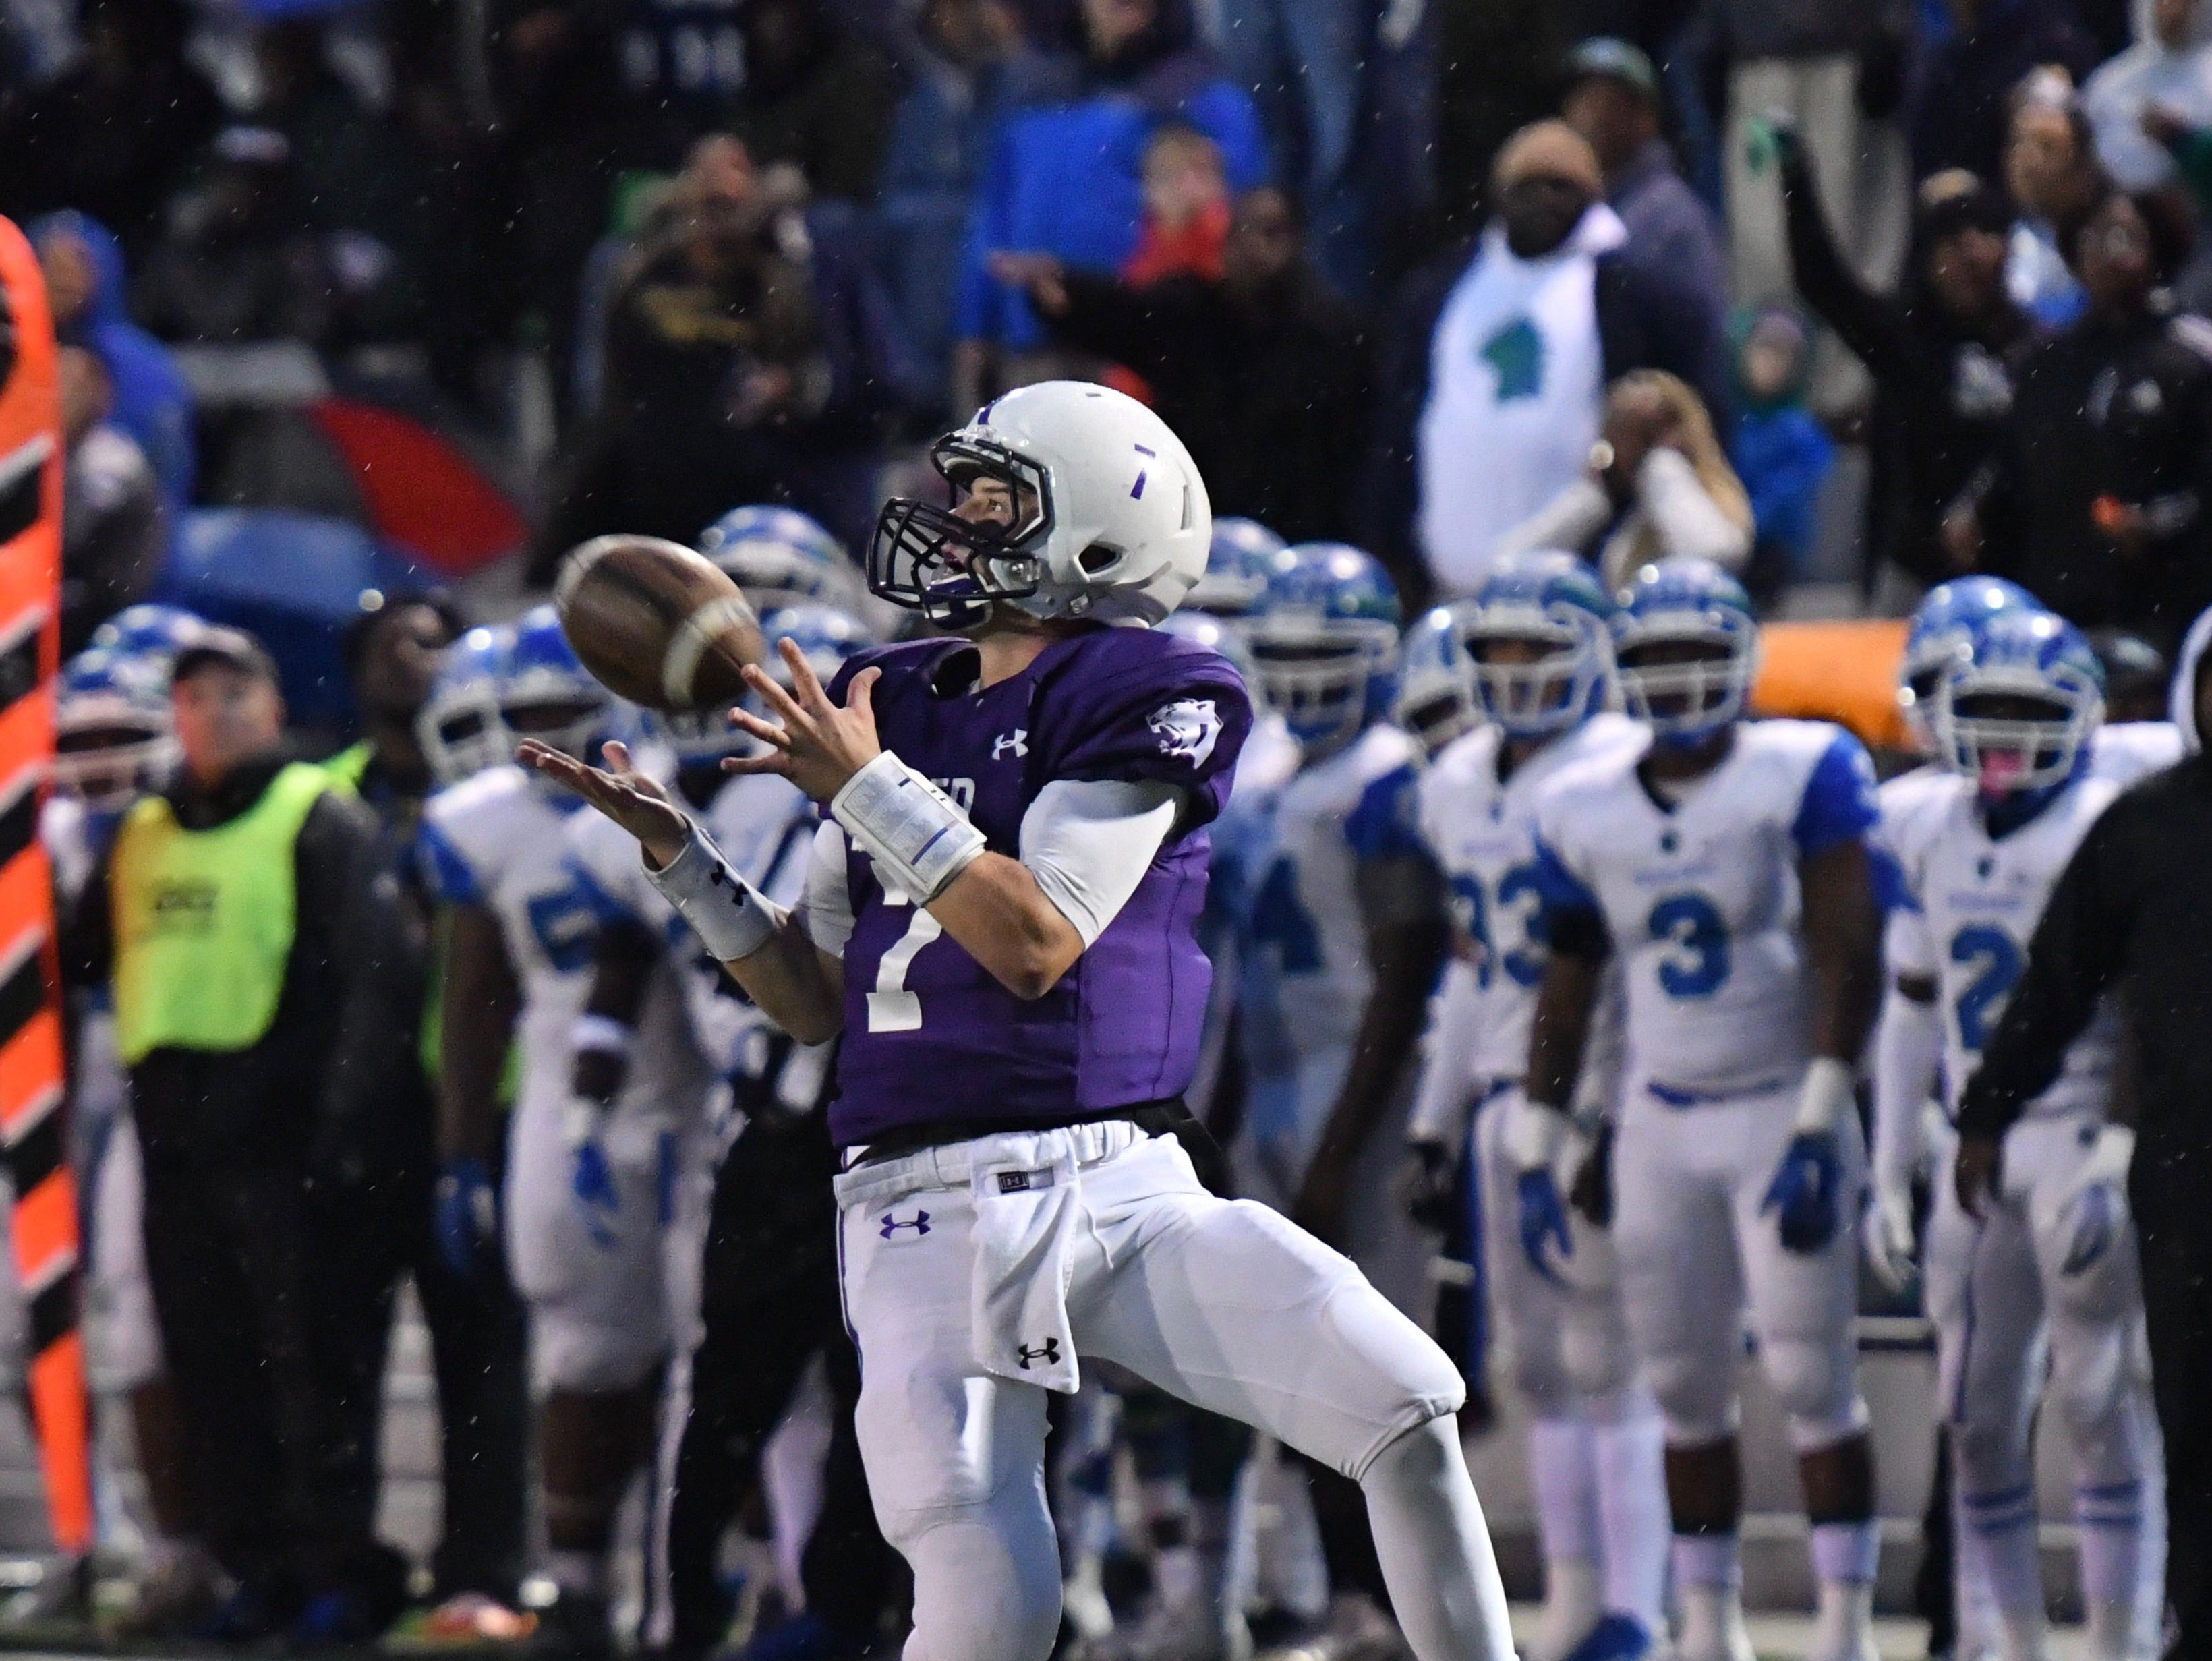 Elder's Matthew Luebbe brings in a touchdown pass against Winton Woods Friday, Oct. 12, 2018 at High School